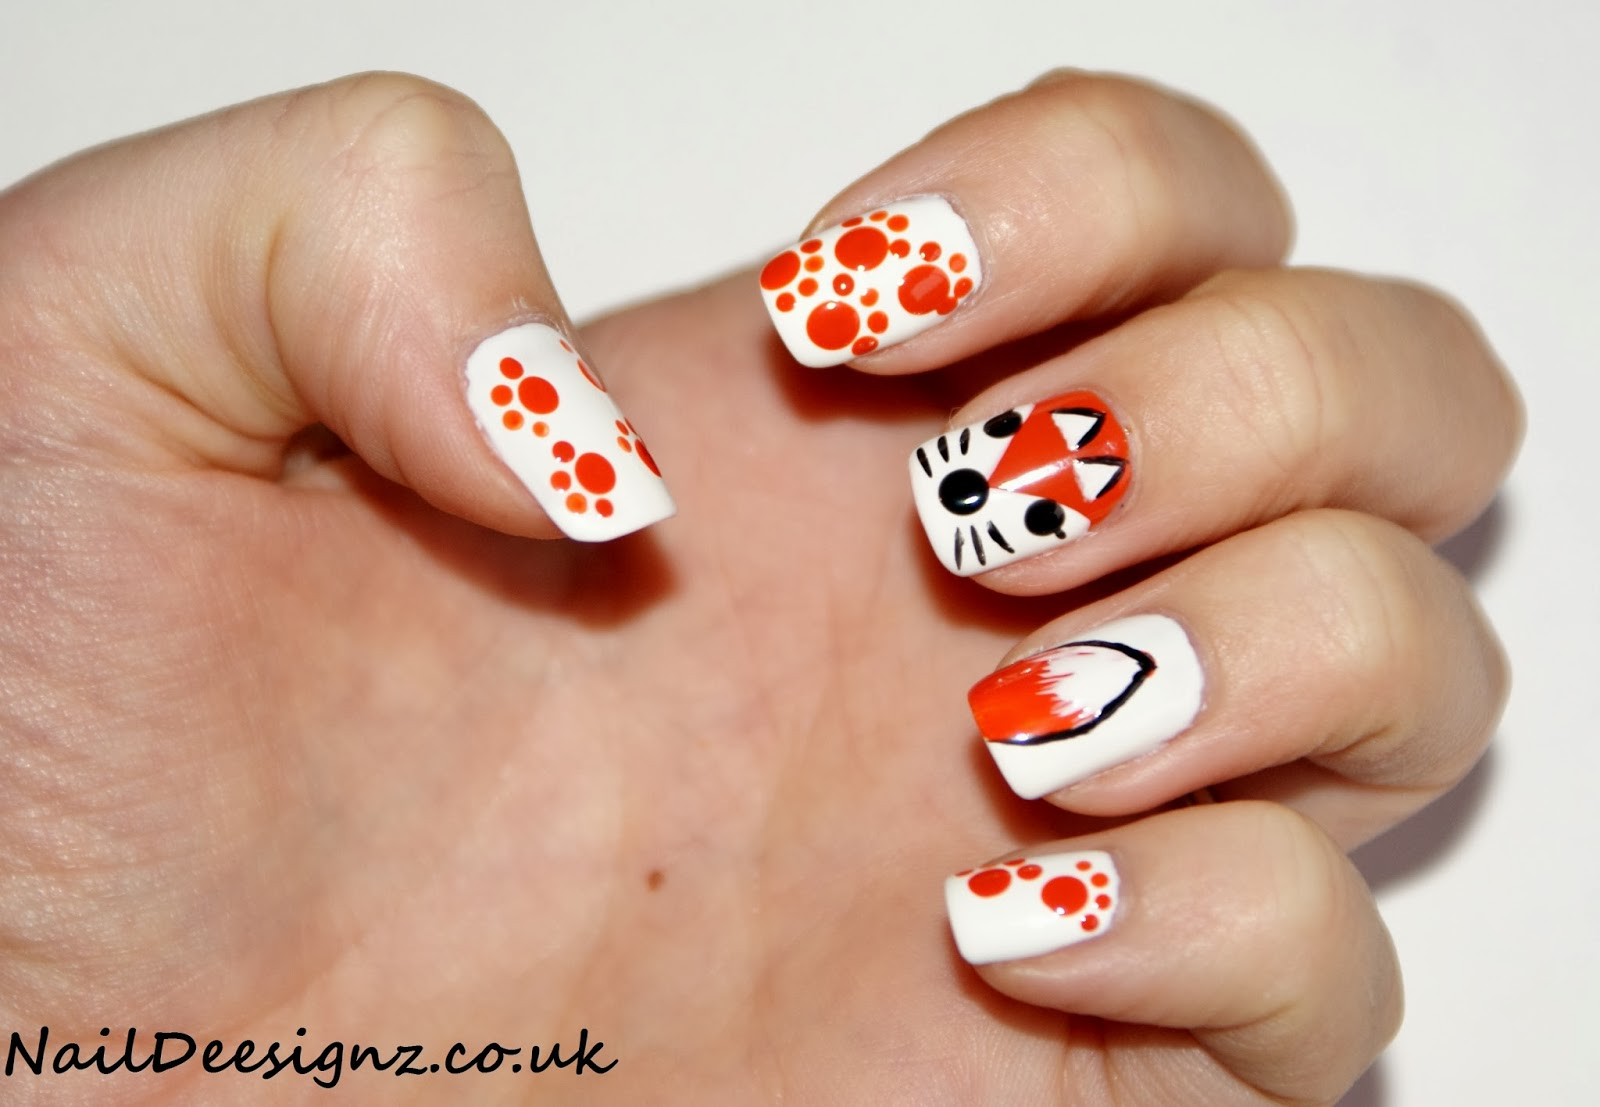 NailDeesignz: Fox Nail Art